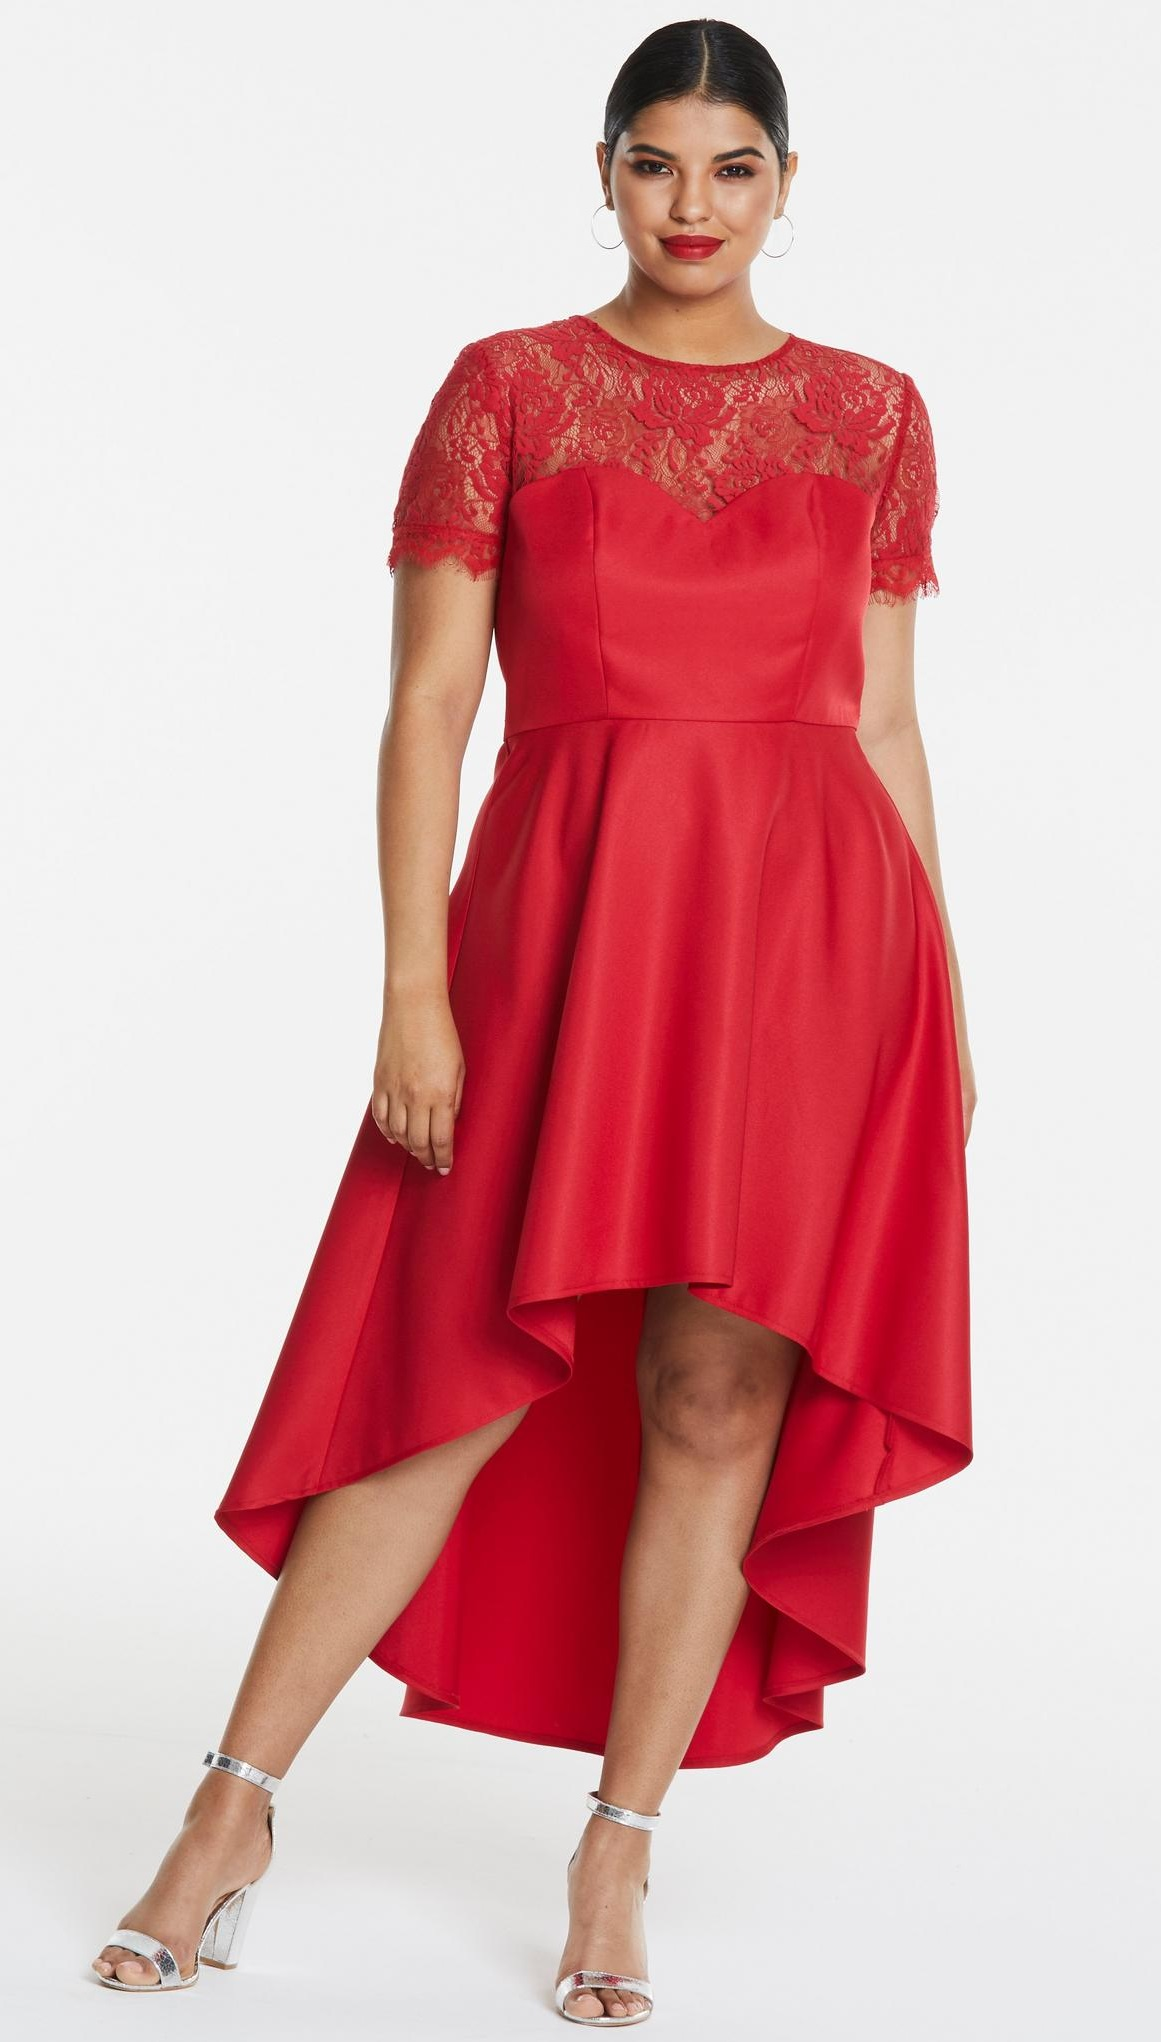 Plus Size Dress To Wear To Wedding As Guest